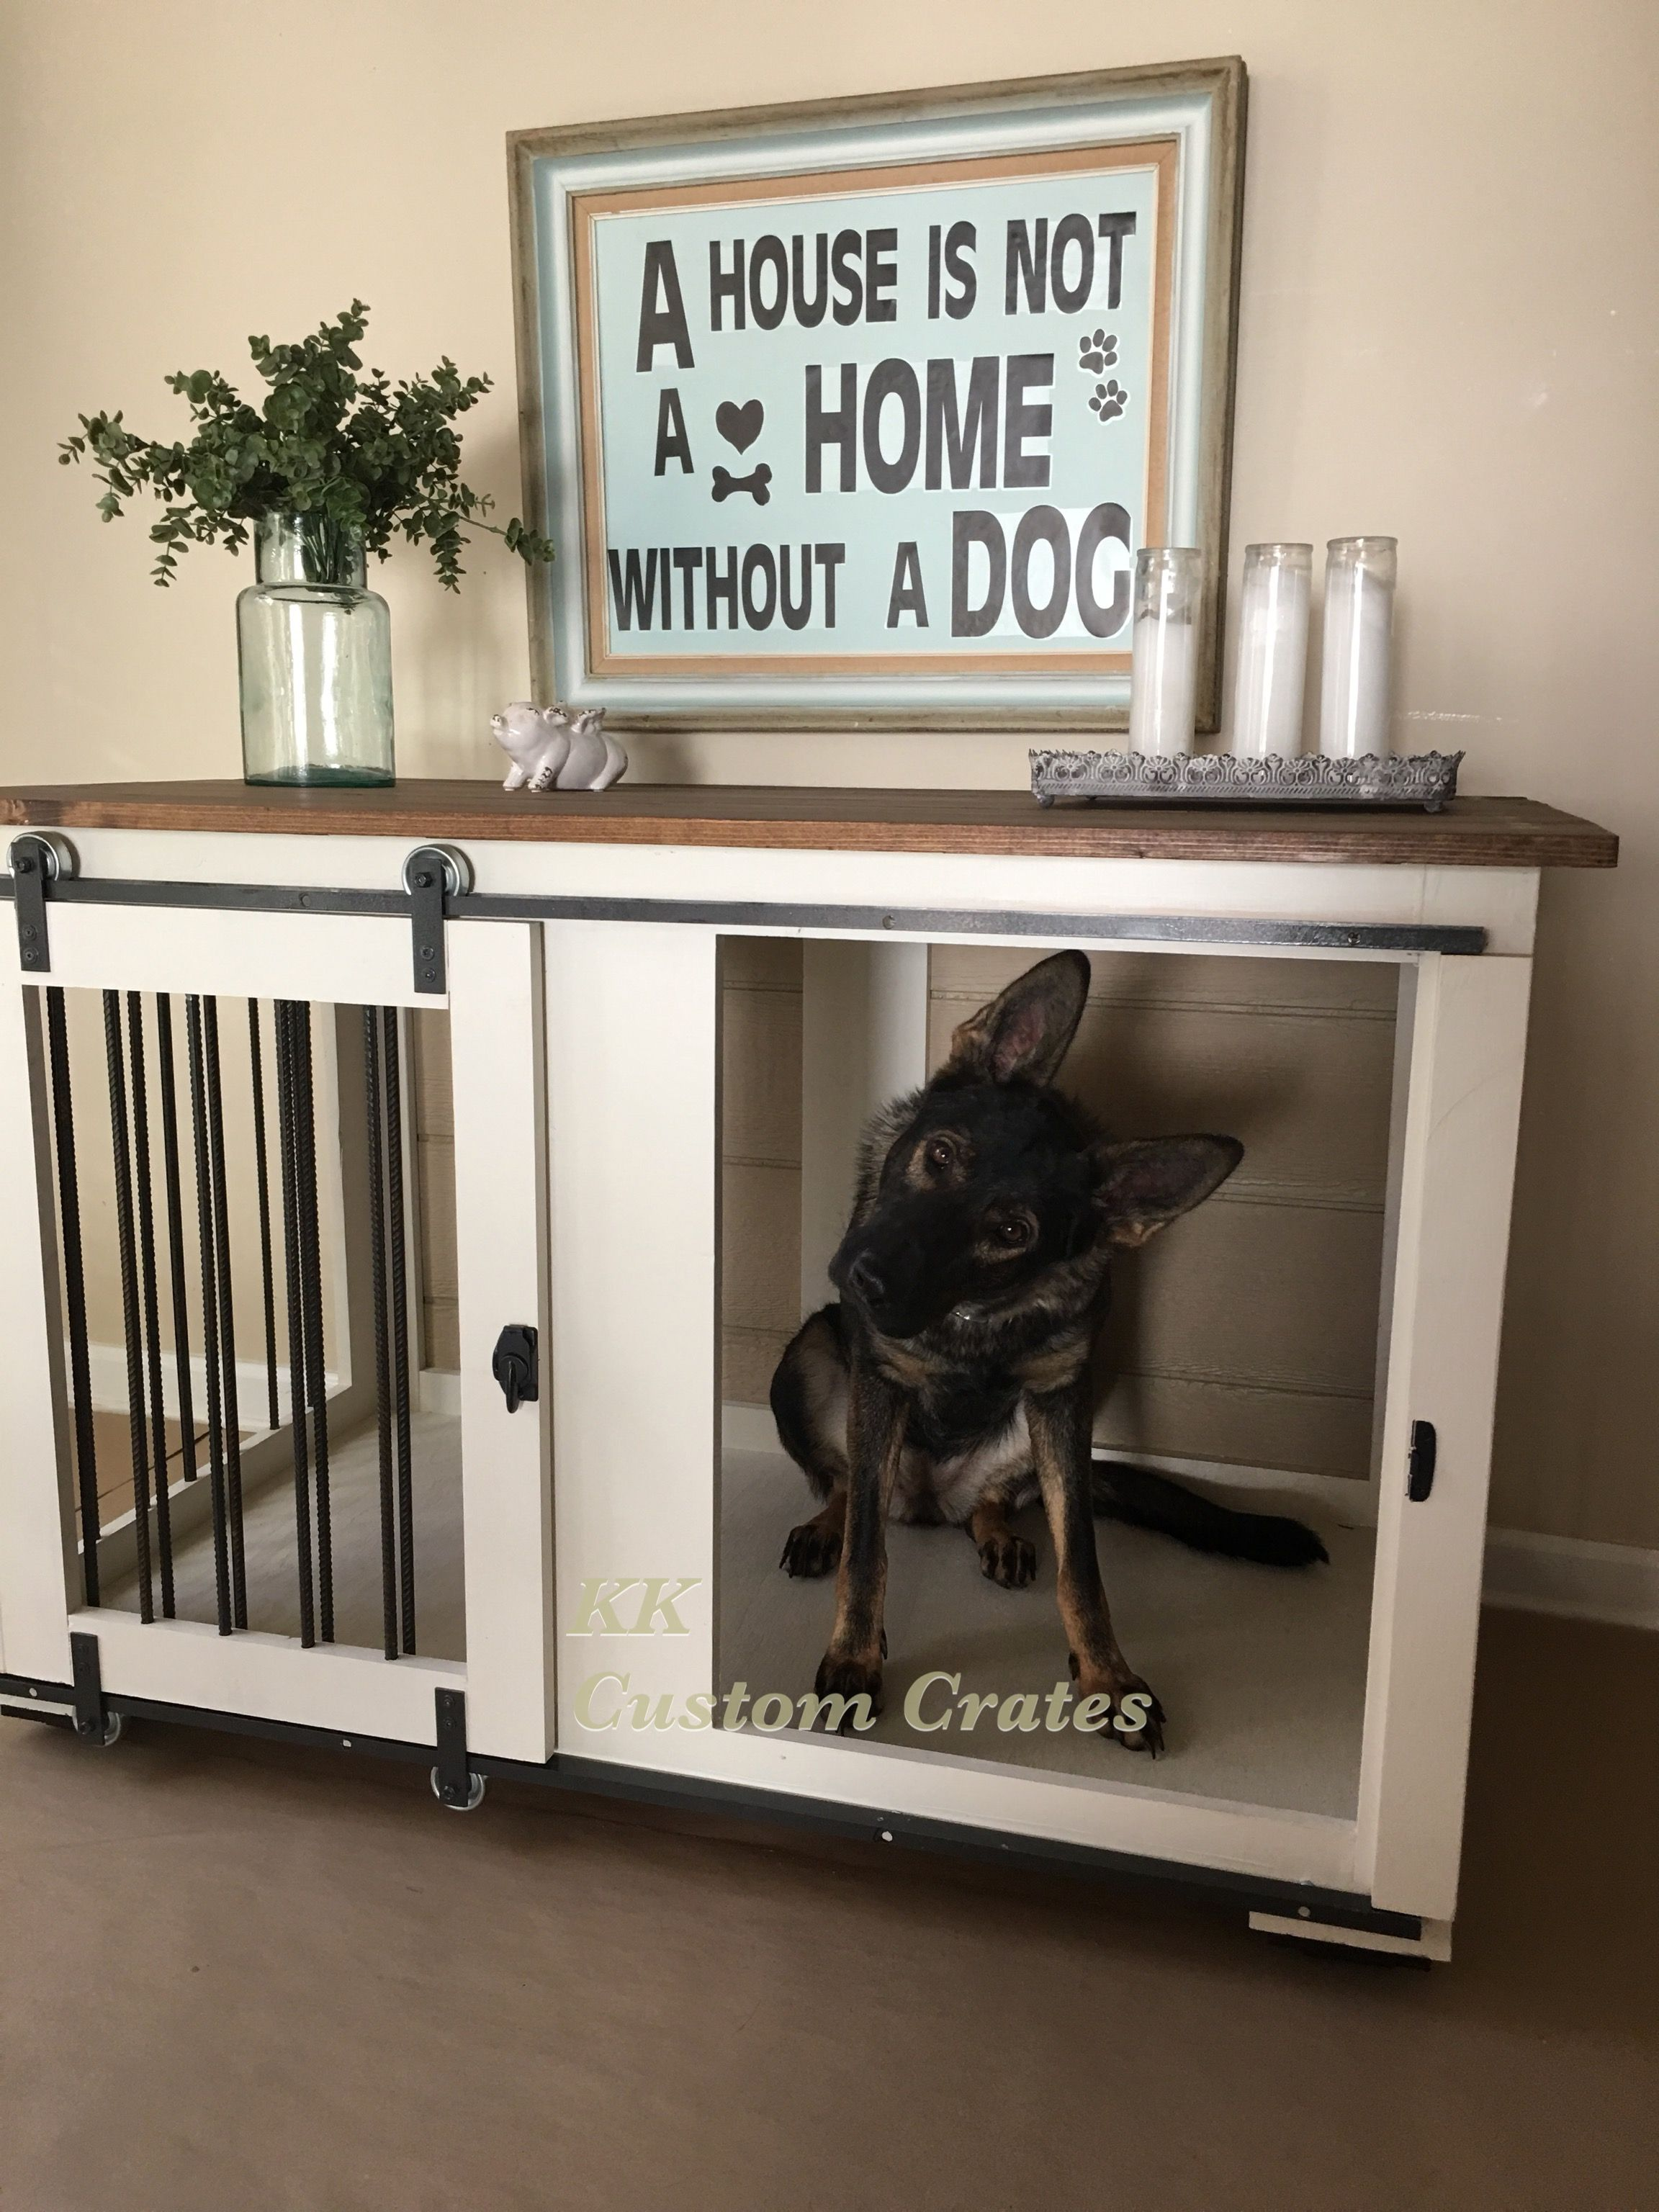 Kk Custom Crates Dogcratefurniture Pet Homes Dog